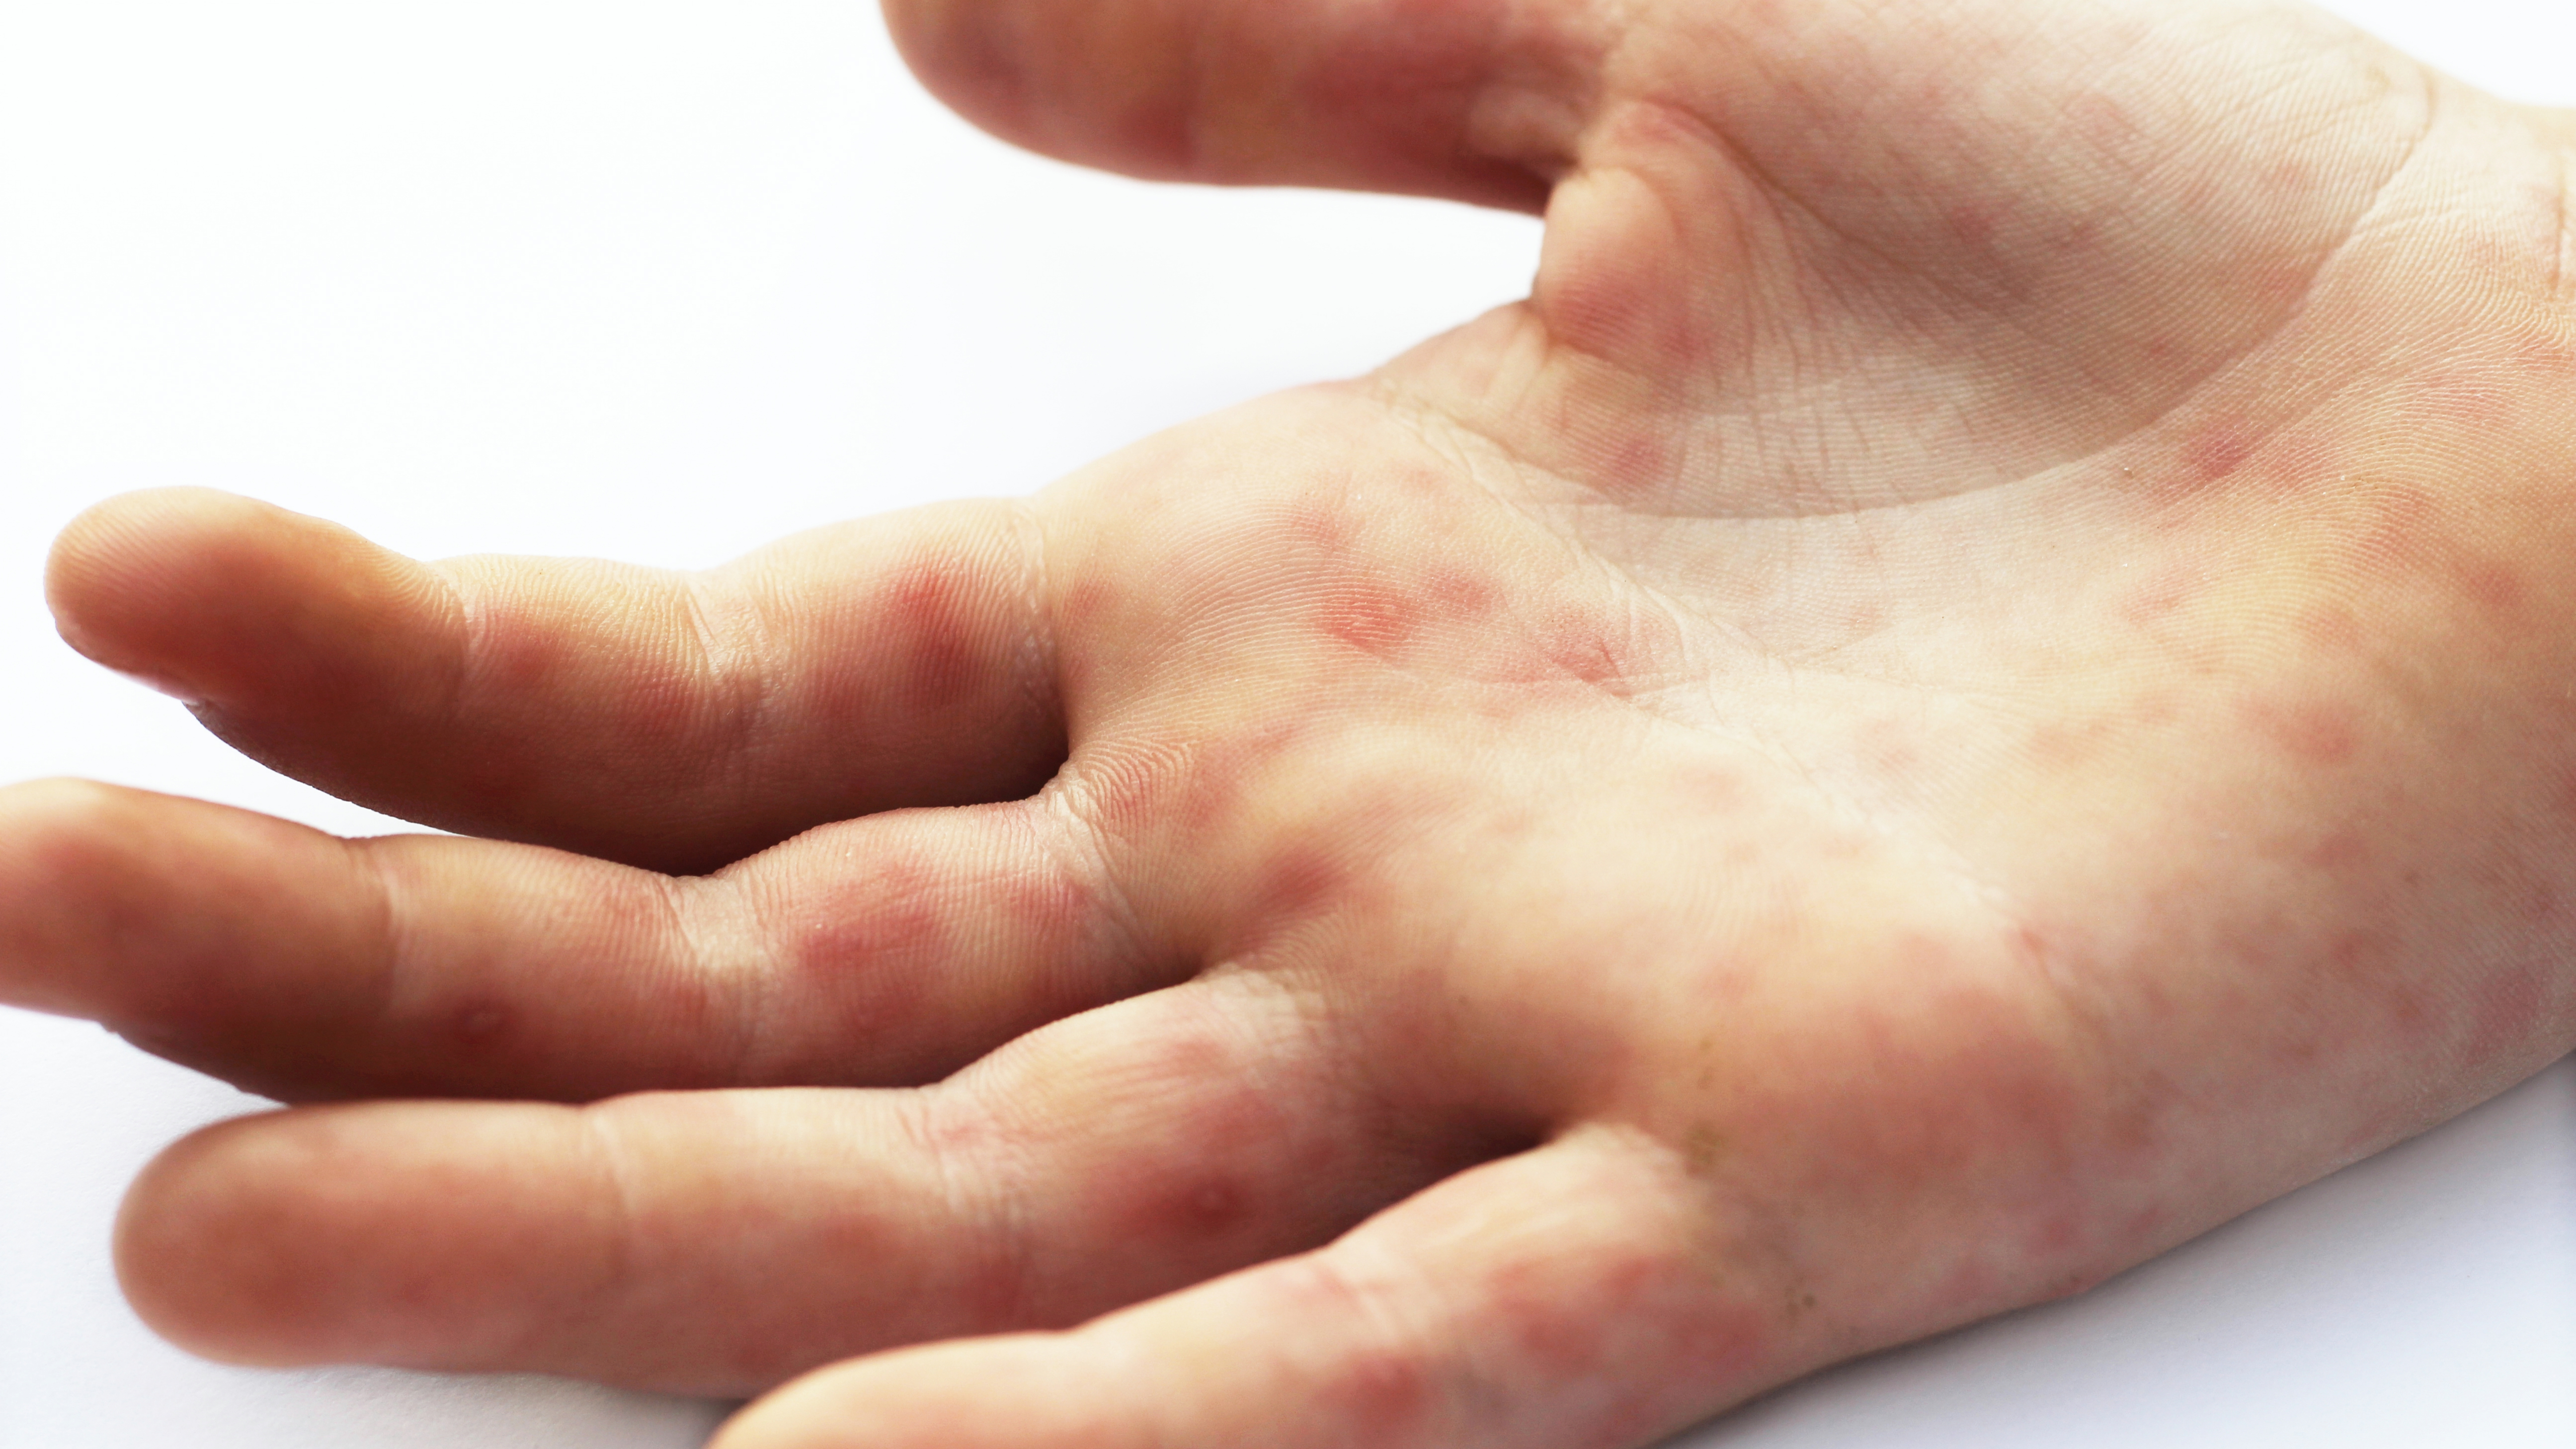 Hand foot and mouth disease with red rash on the palm of the hand. Enterovirus. Coxsackie virus.